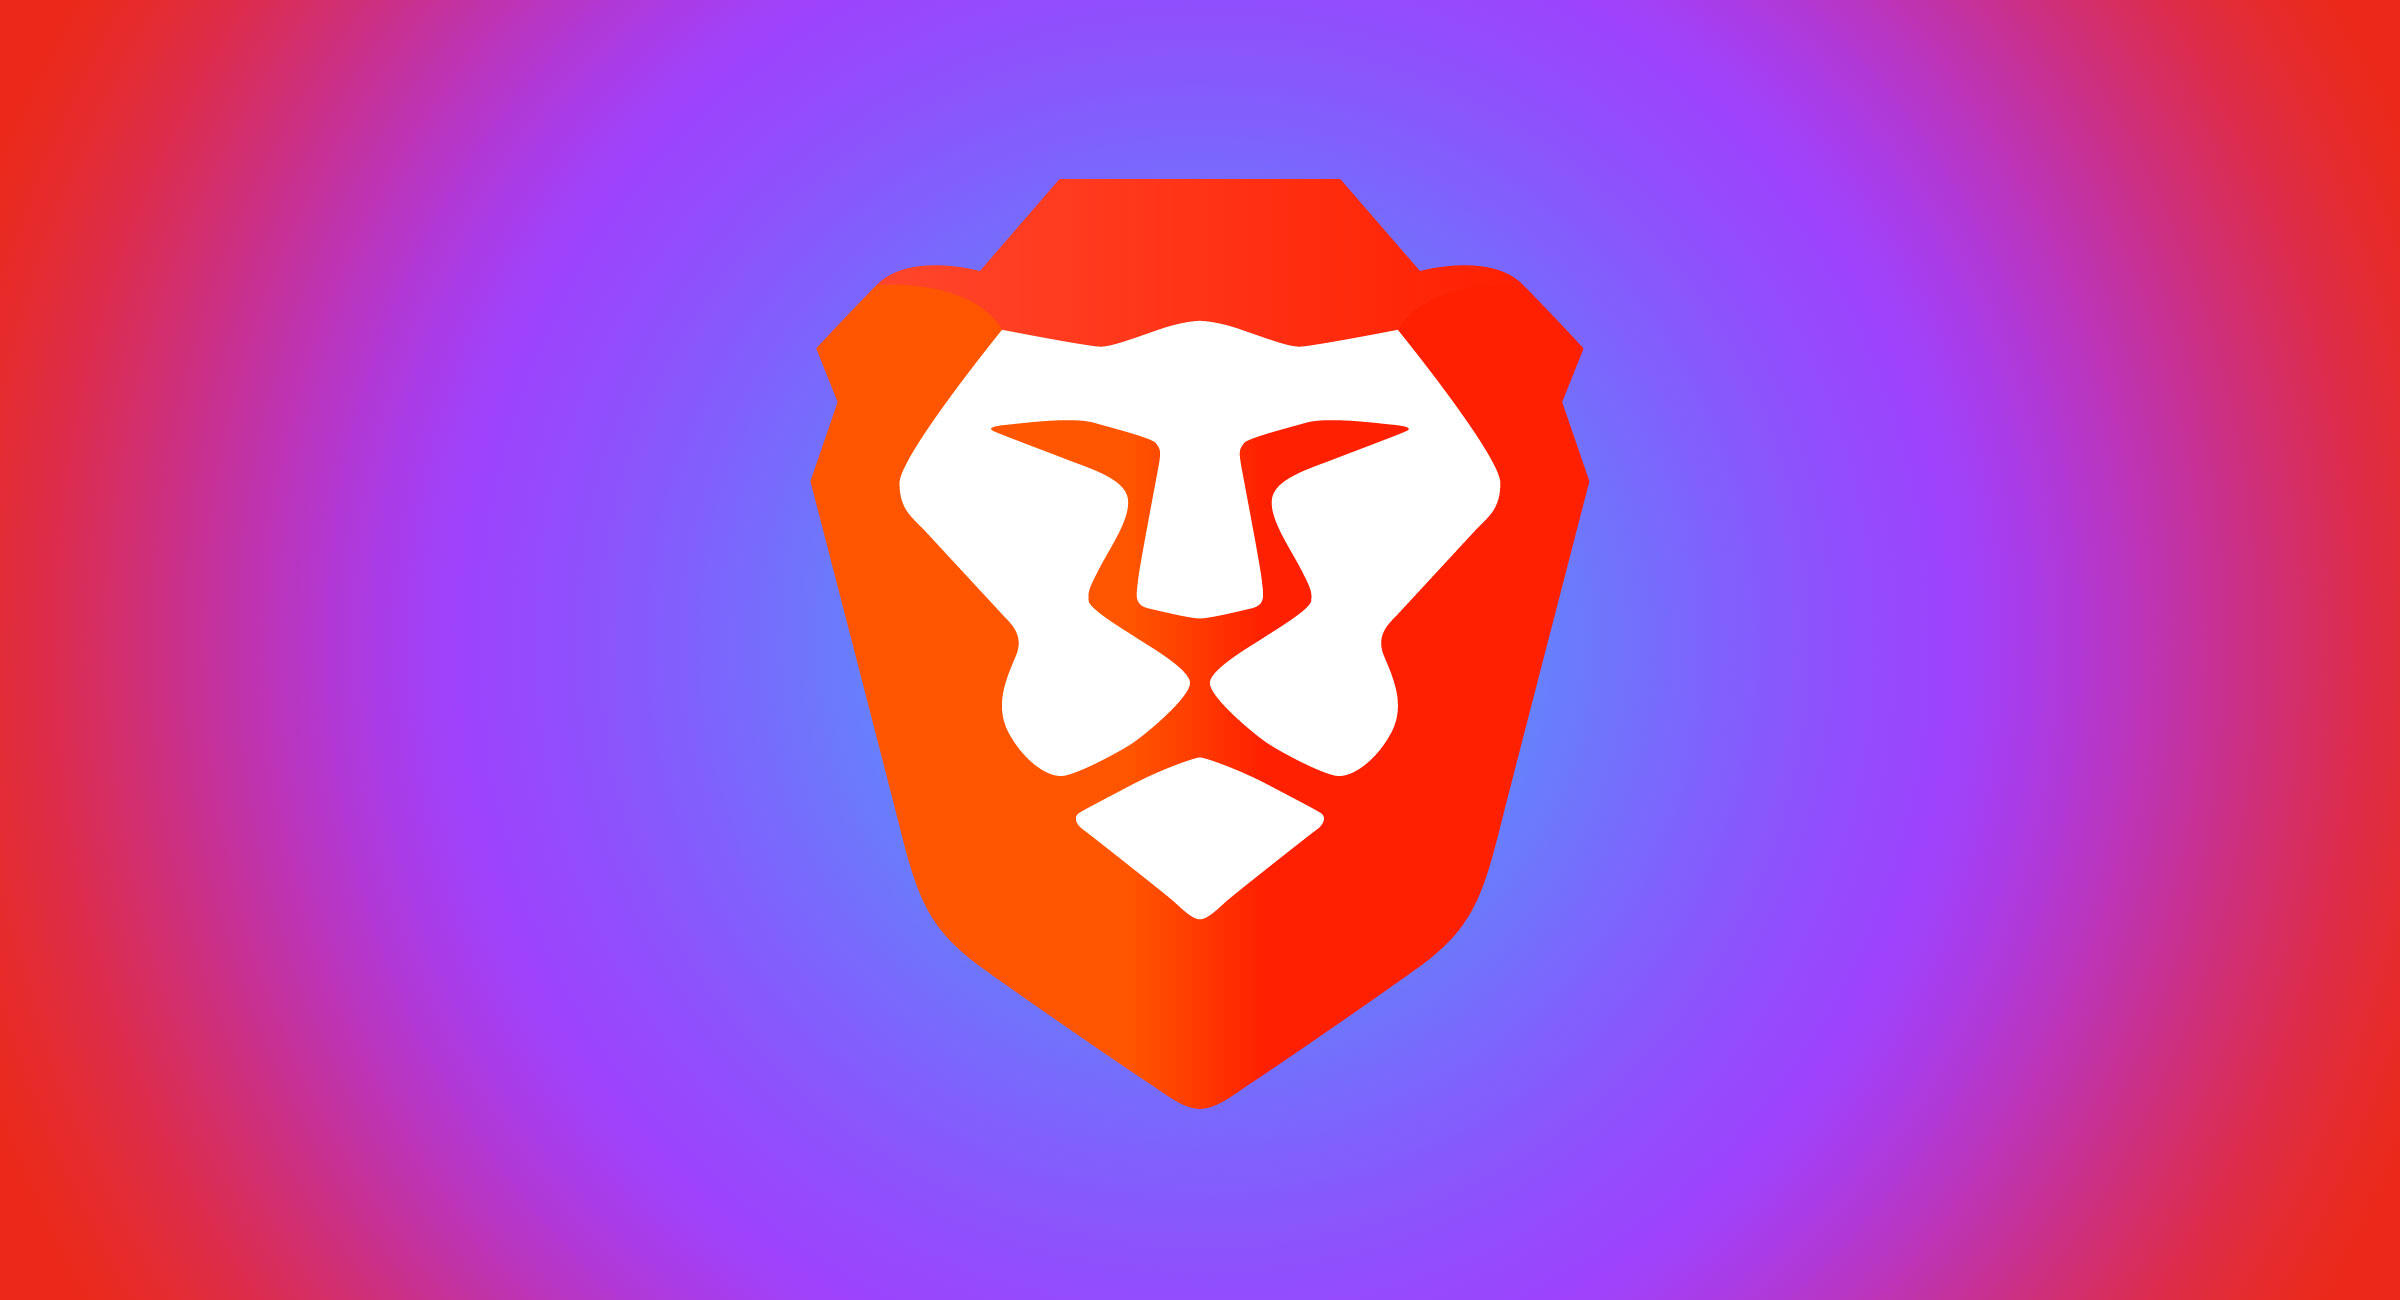 Brave browser icon and logo